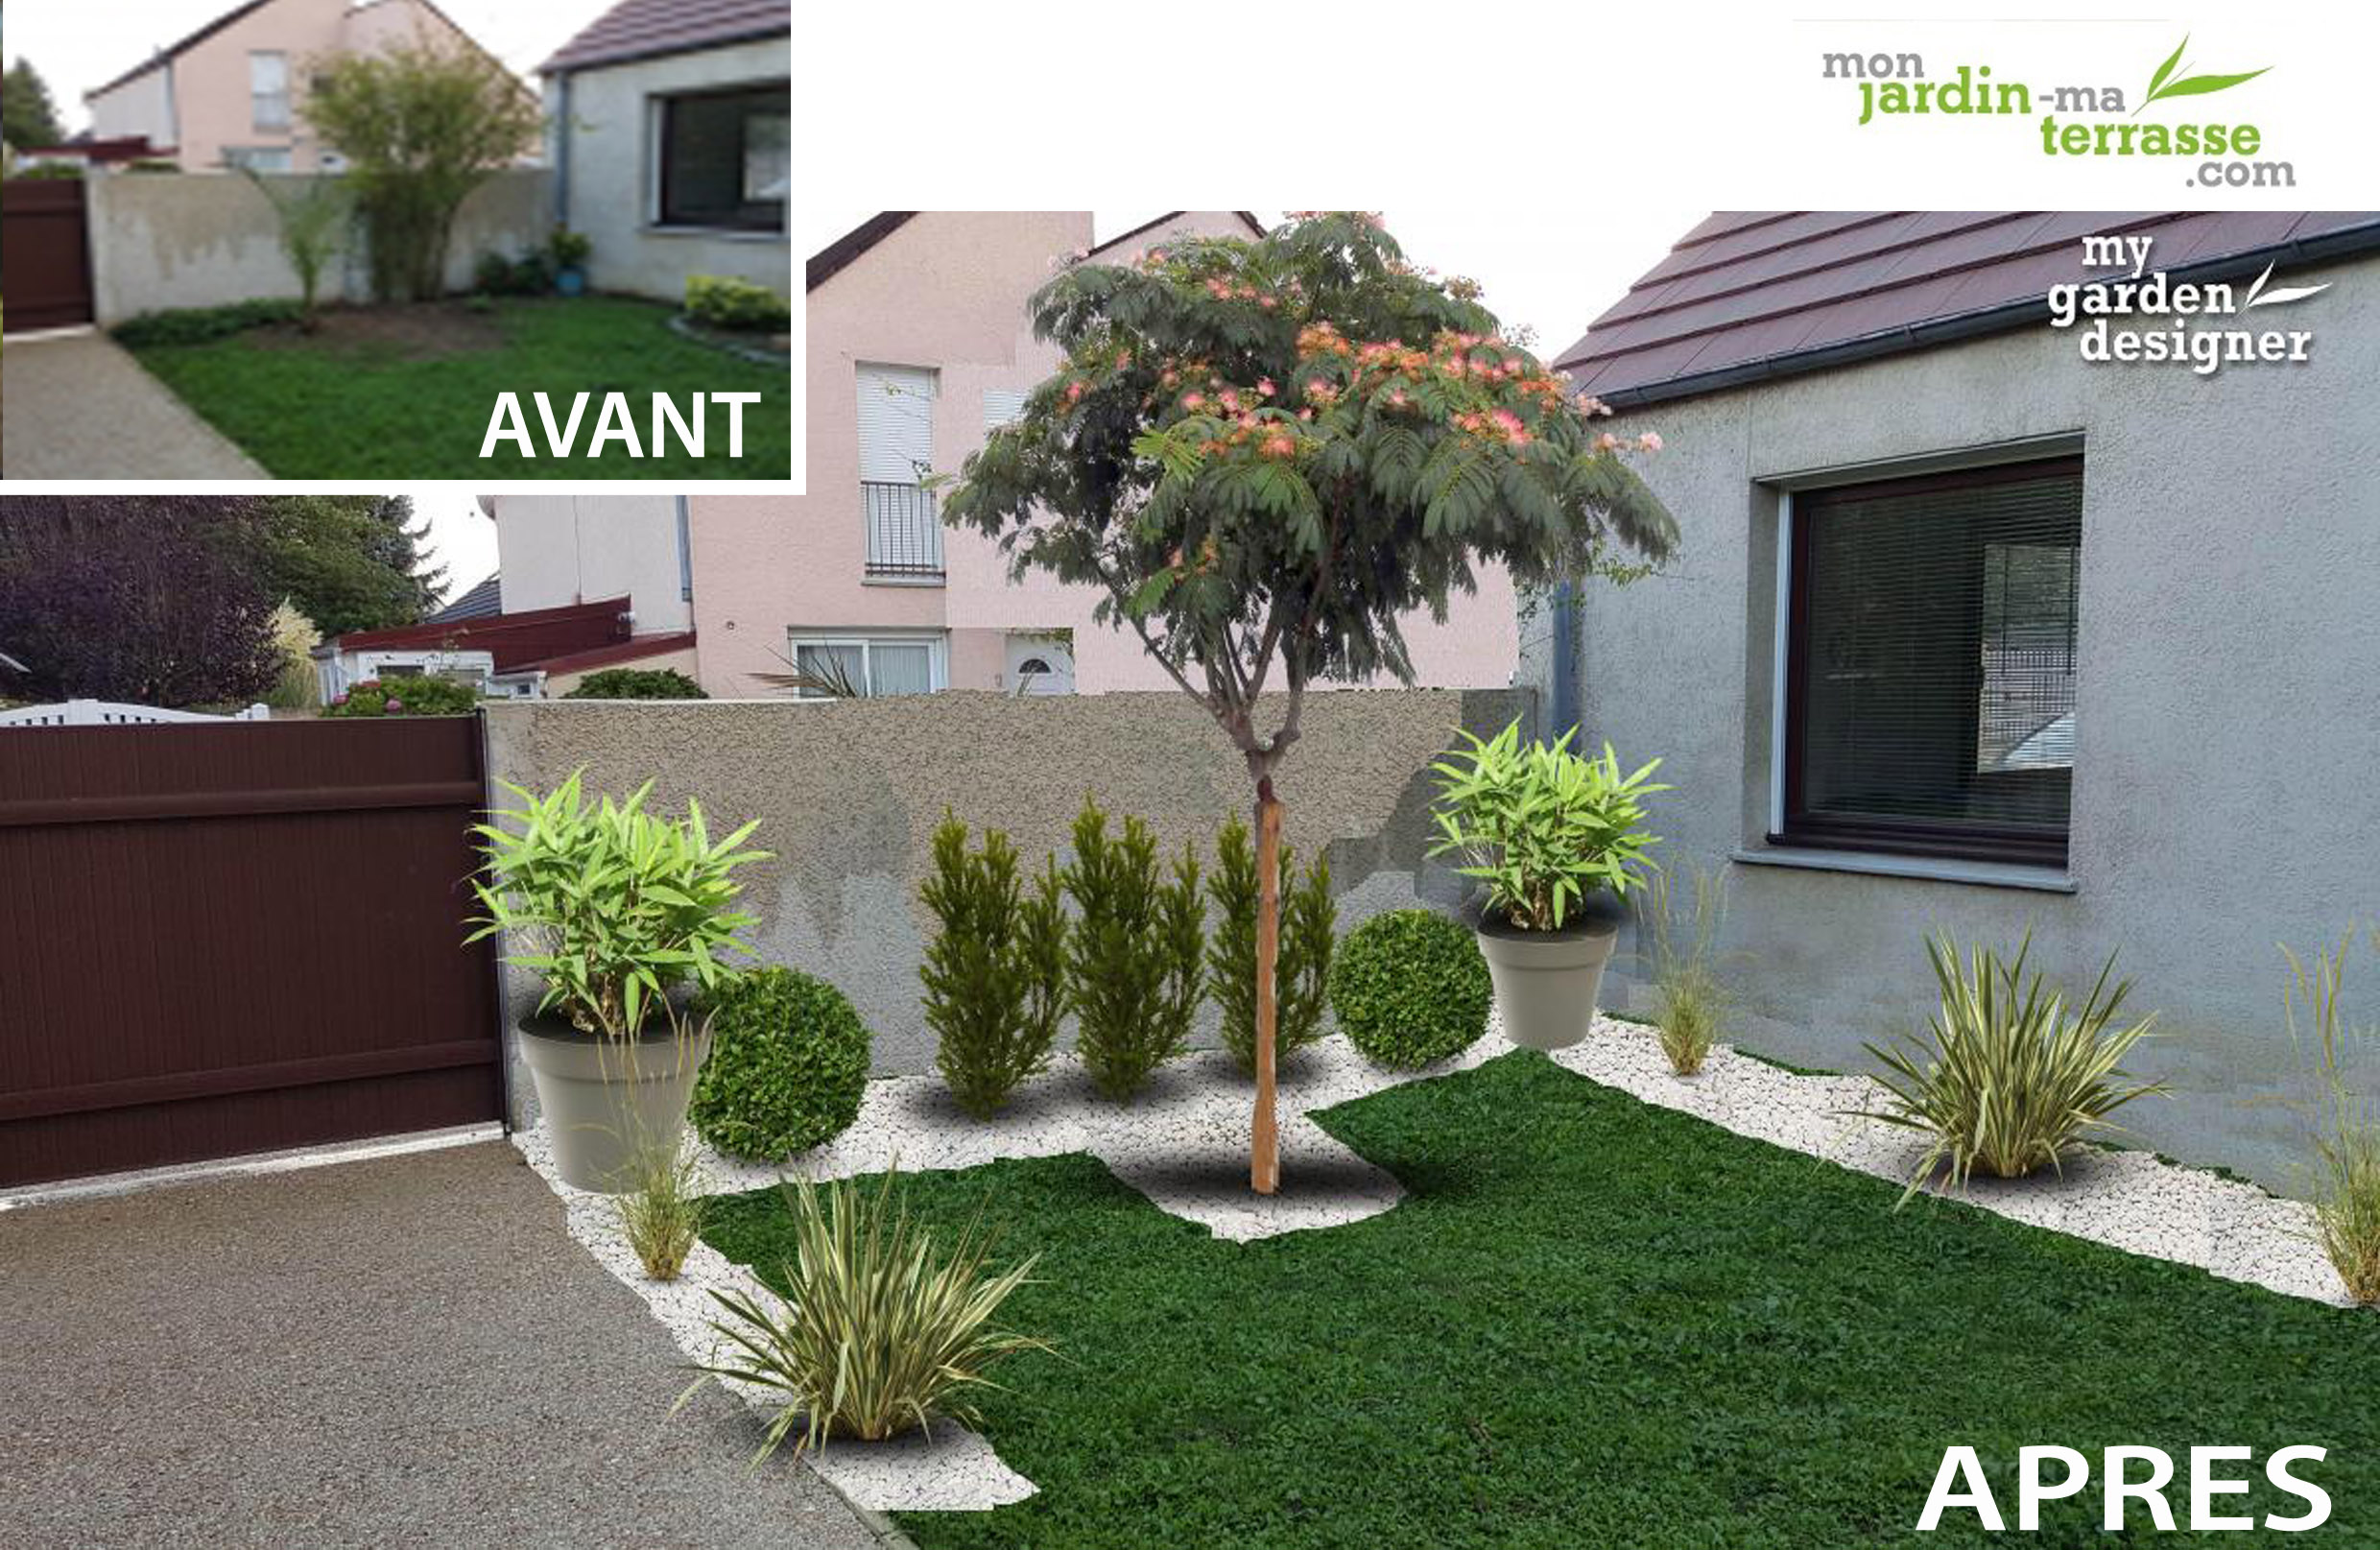 Am nager un petit jardin de 30m monjardin for Amenagement jardin